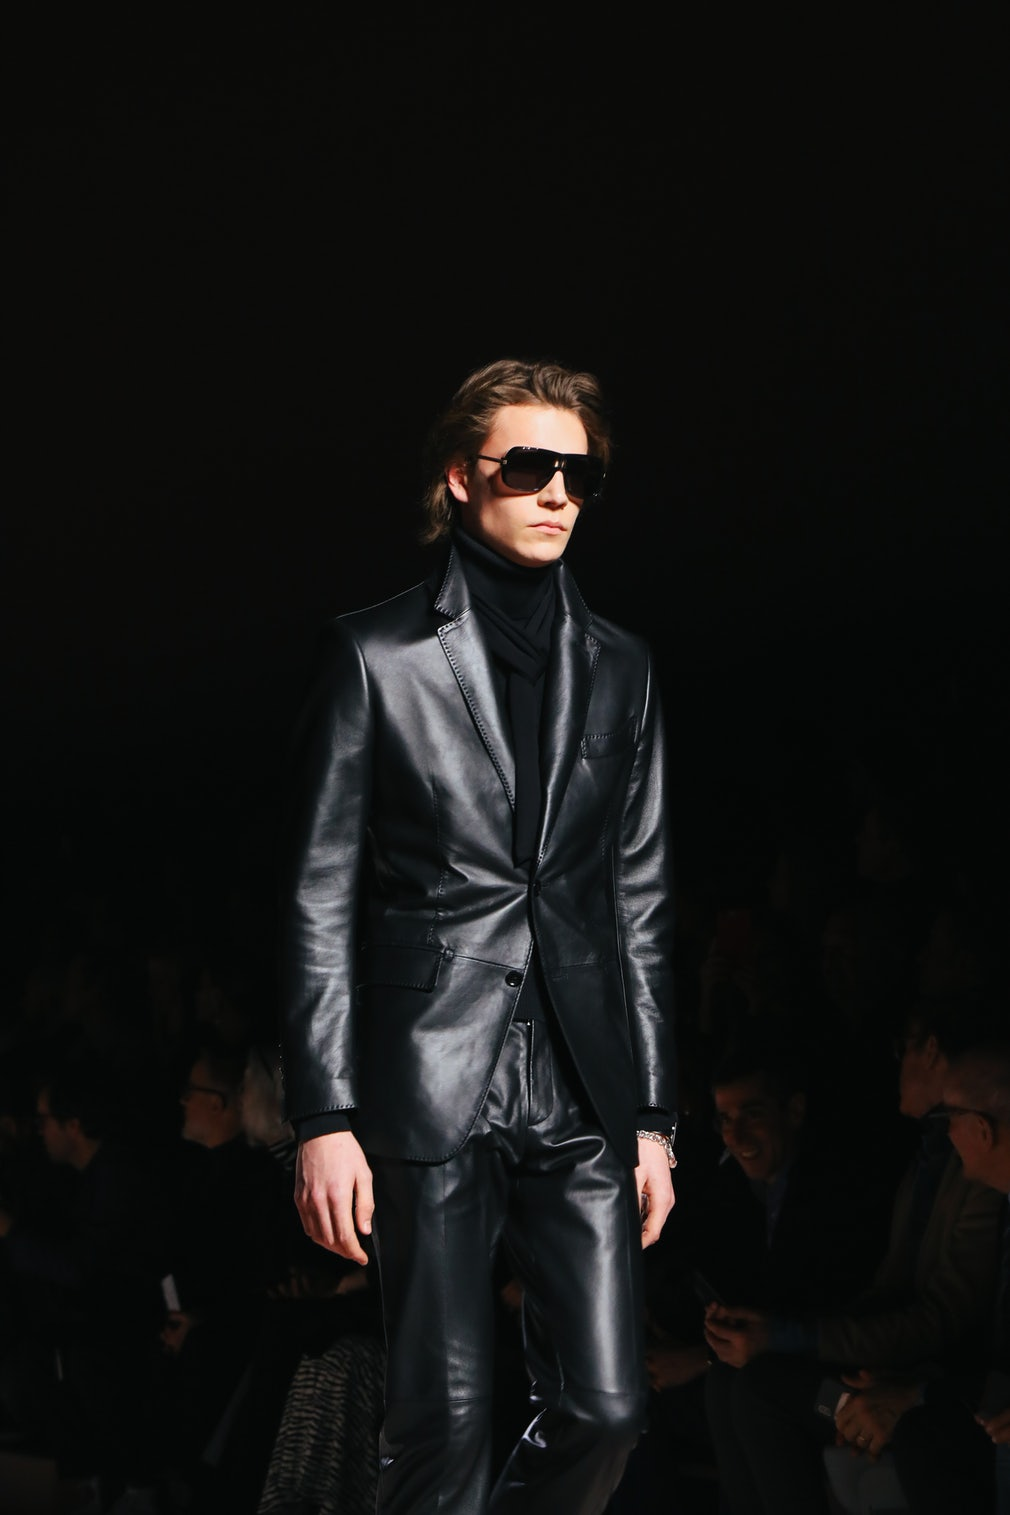 ba599aab3547 A Look at Highlights from NYFW  Men s